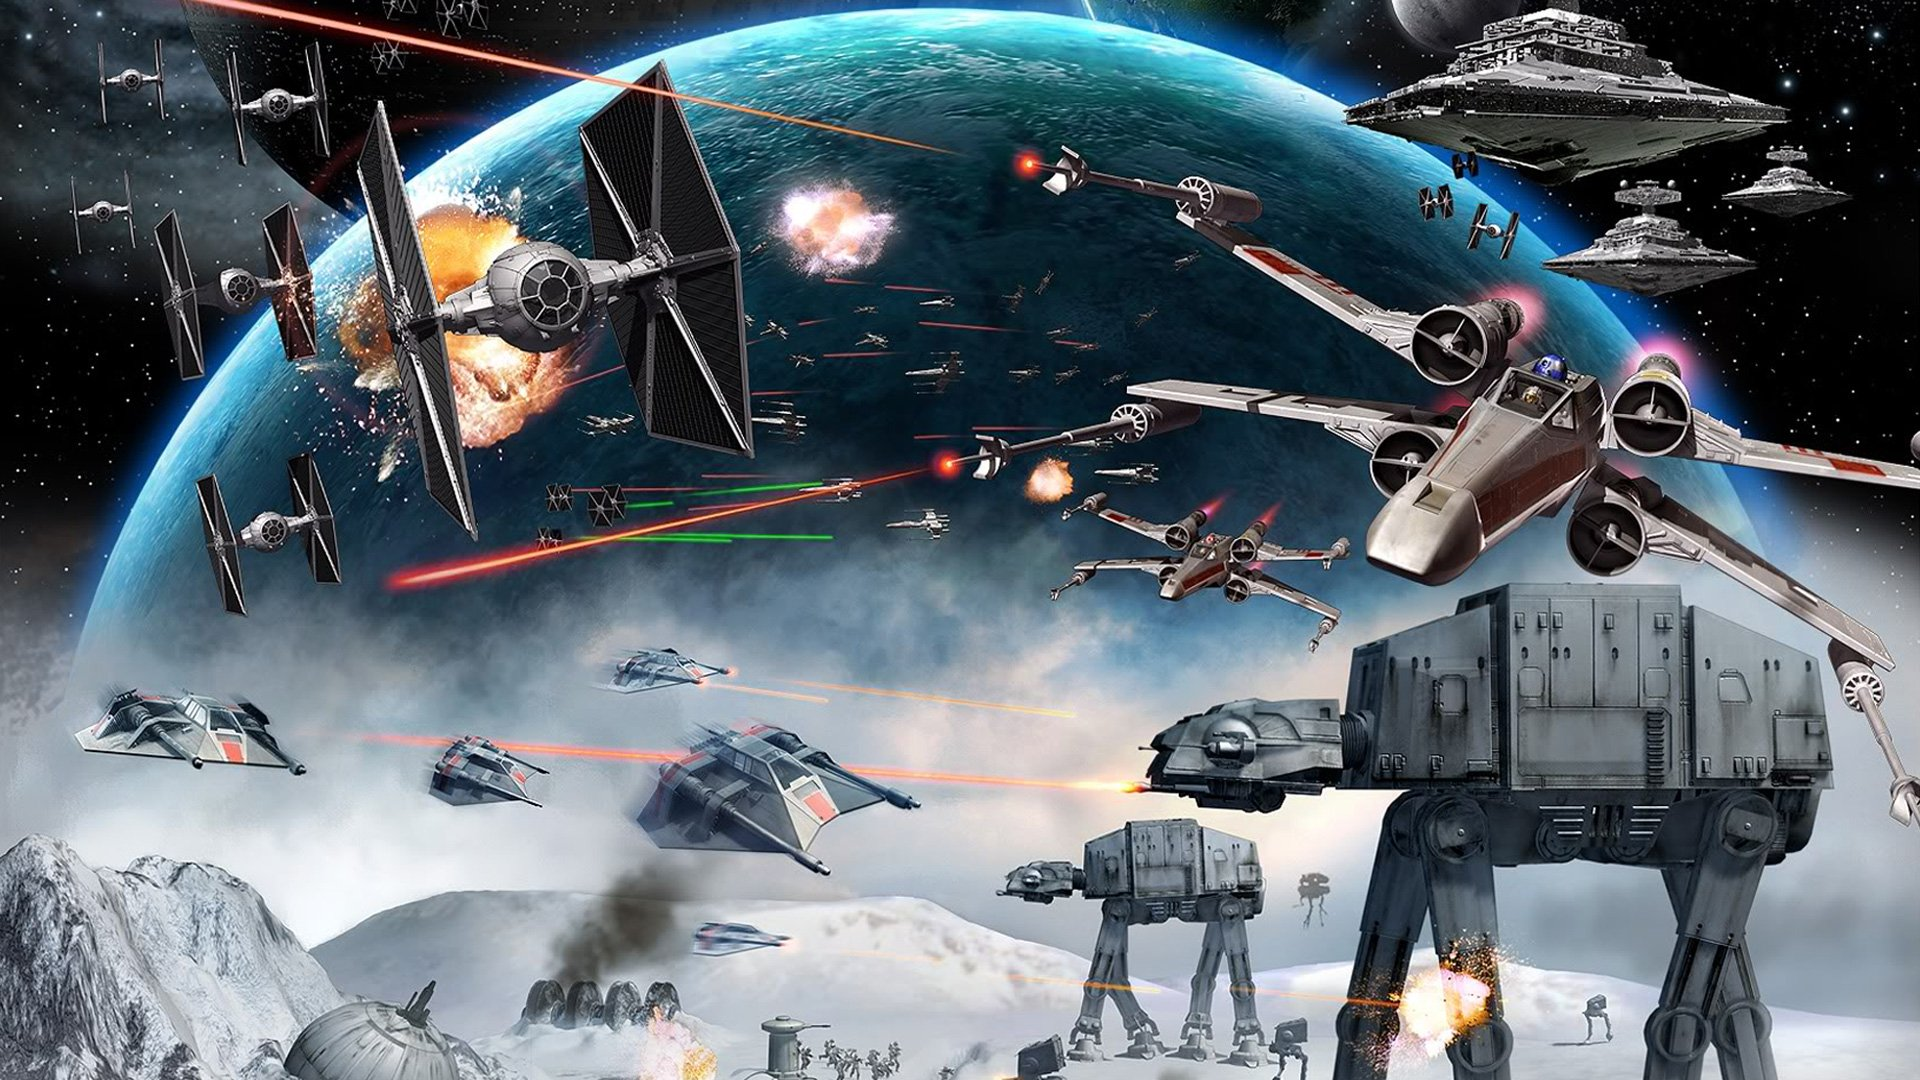 Star Wars Widescreen Wallpapers Posted By Ethan Peltier